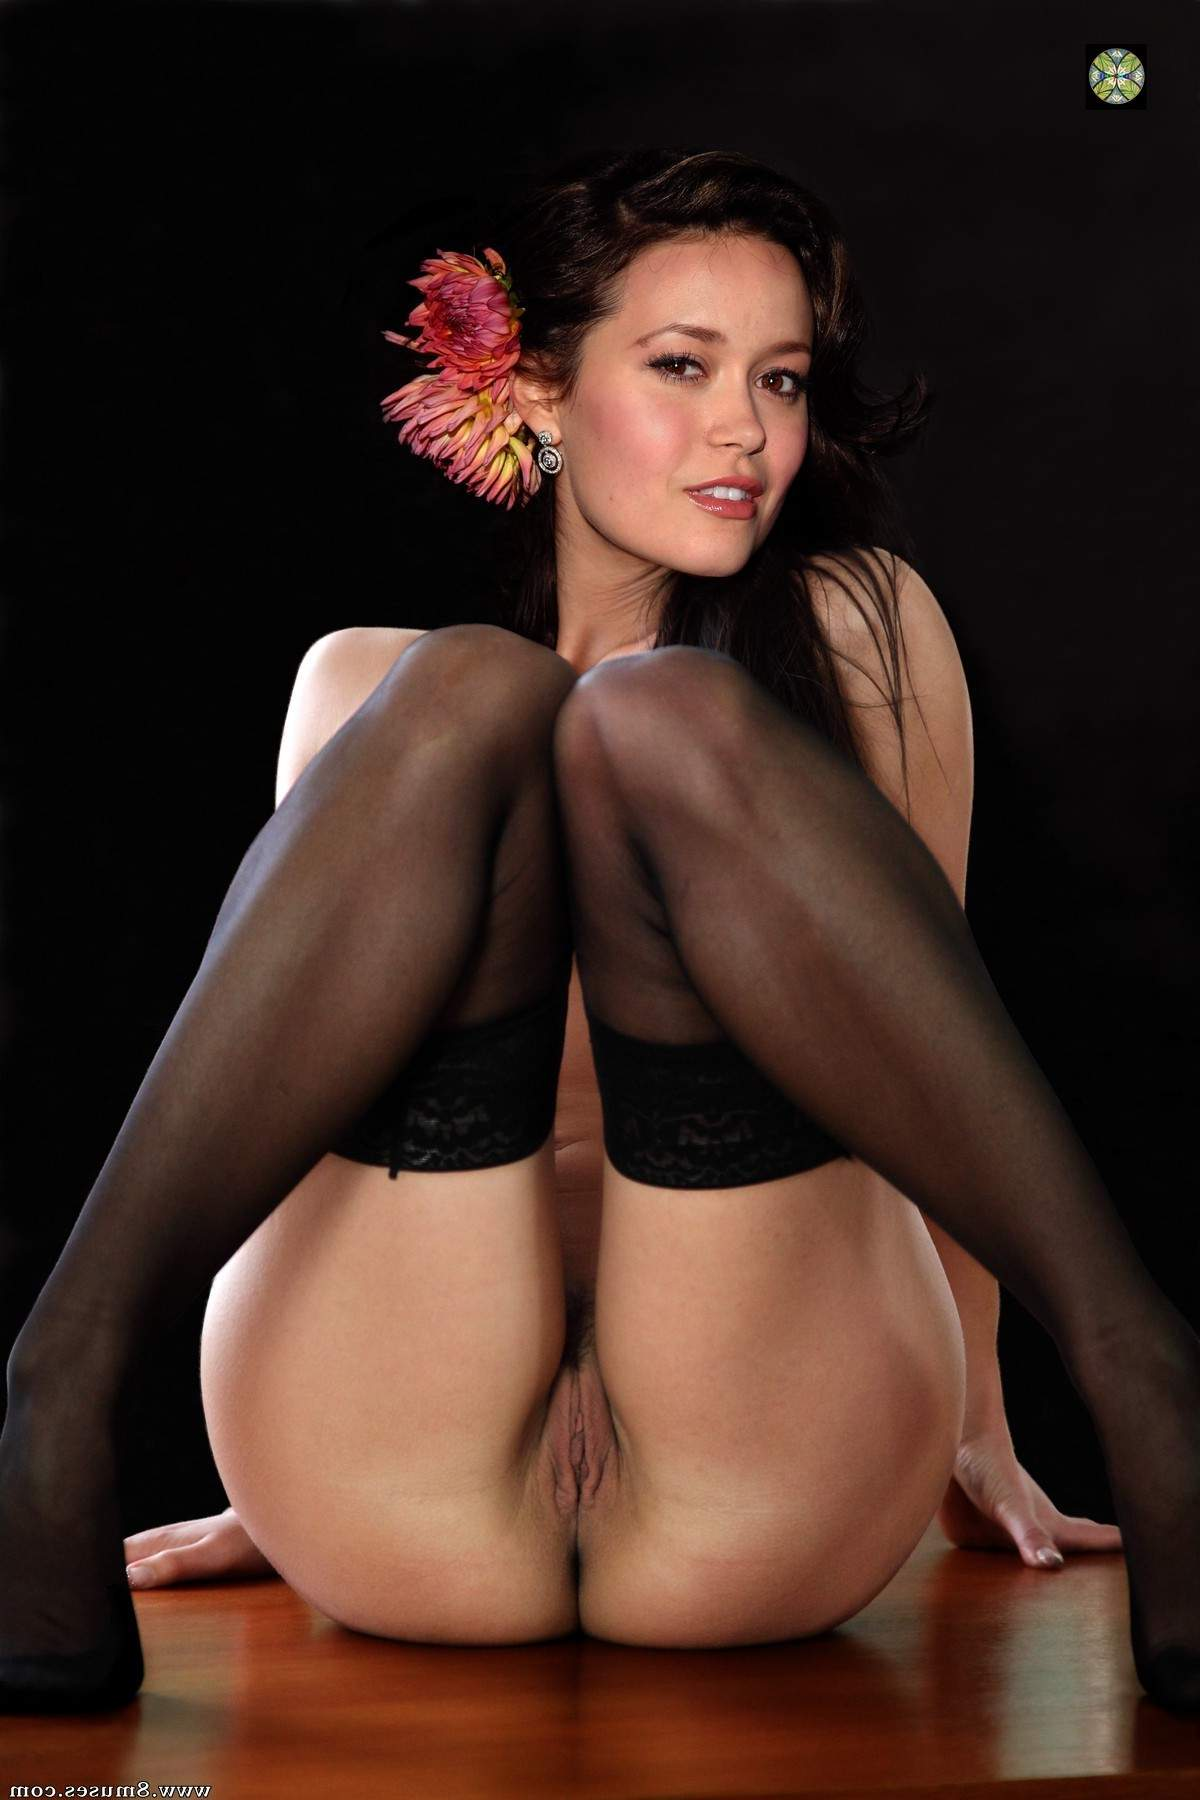 Fake-Celebrities-Sex-Pictures/Summer-Glau Summer_Glau__8muses_-_Sex_and_Porn_Comics_3.jpg